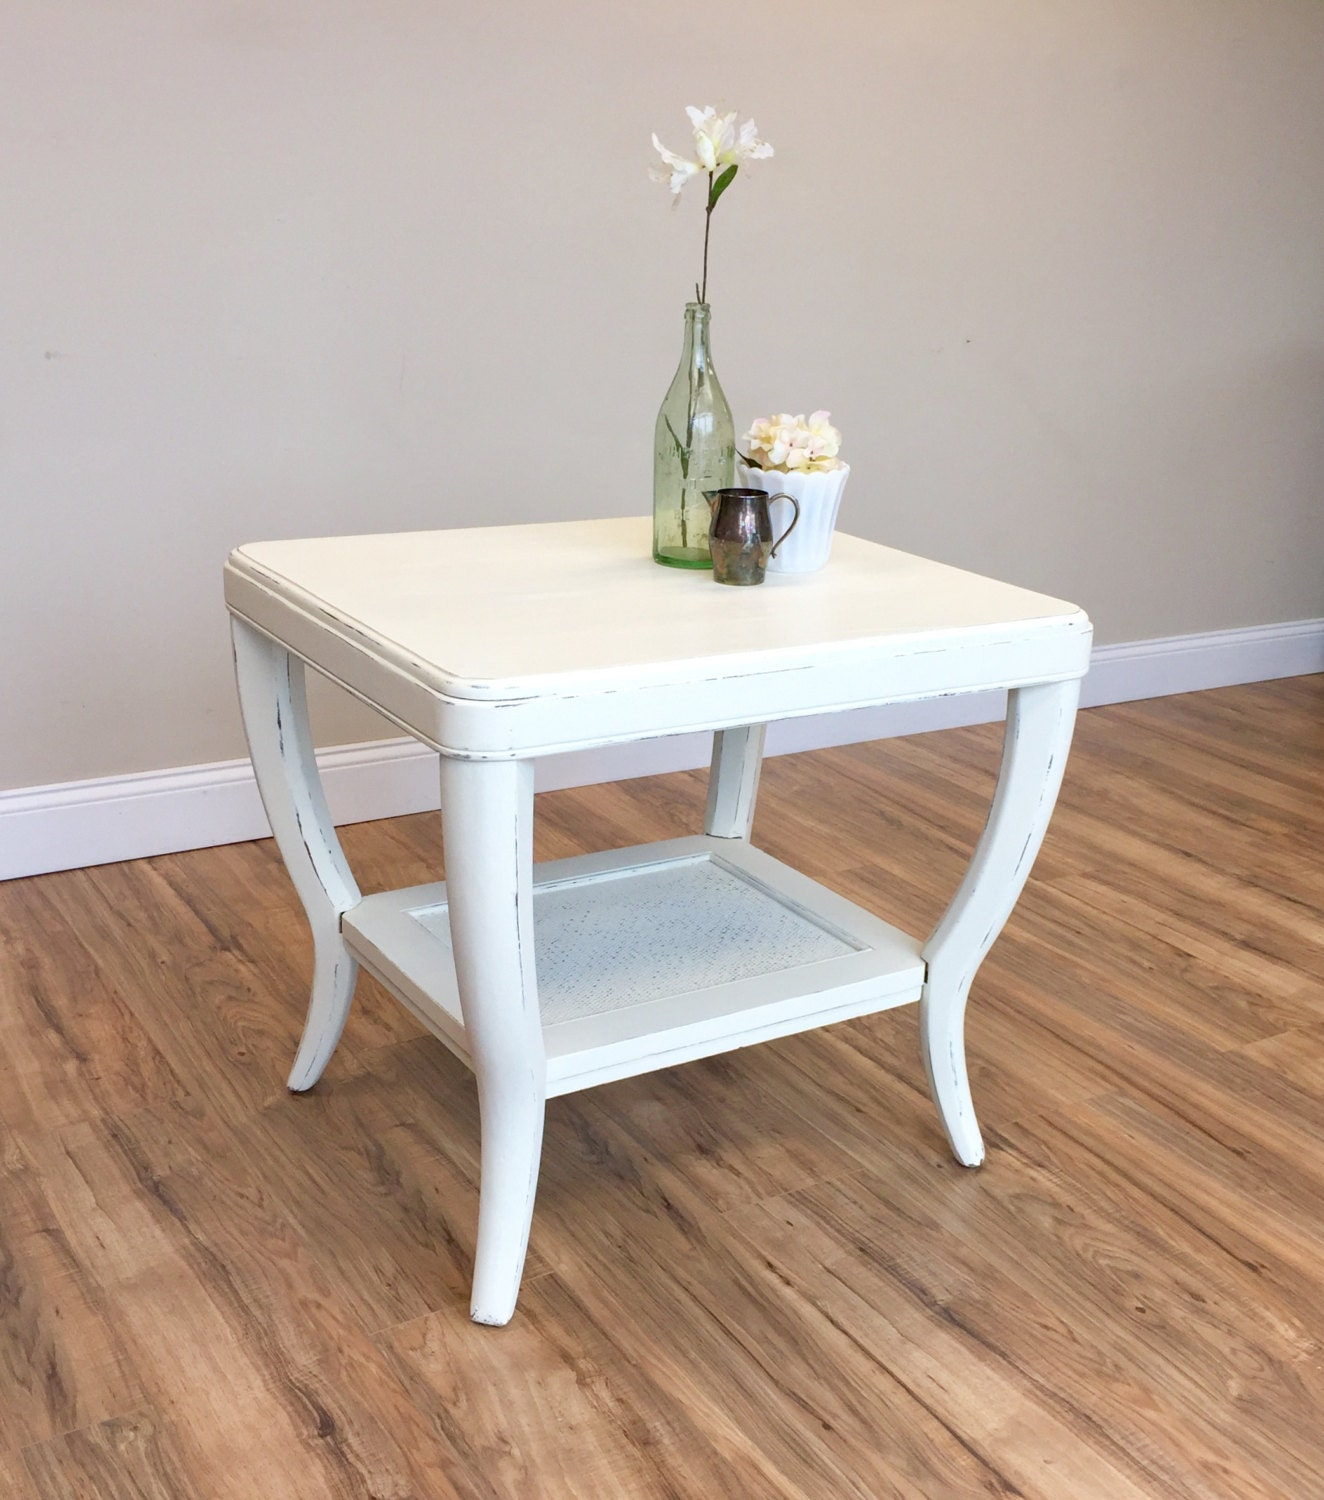 Superbe White End Table   Sofa Side Table   White Side Table For Living Room   White  Bedside Table   Used Furniture NYC   Country Furniture